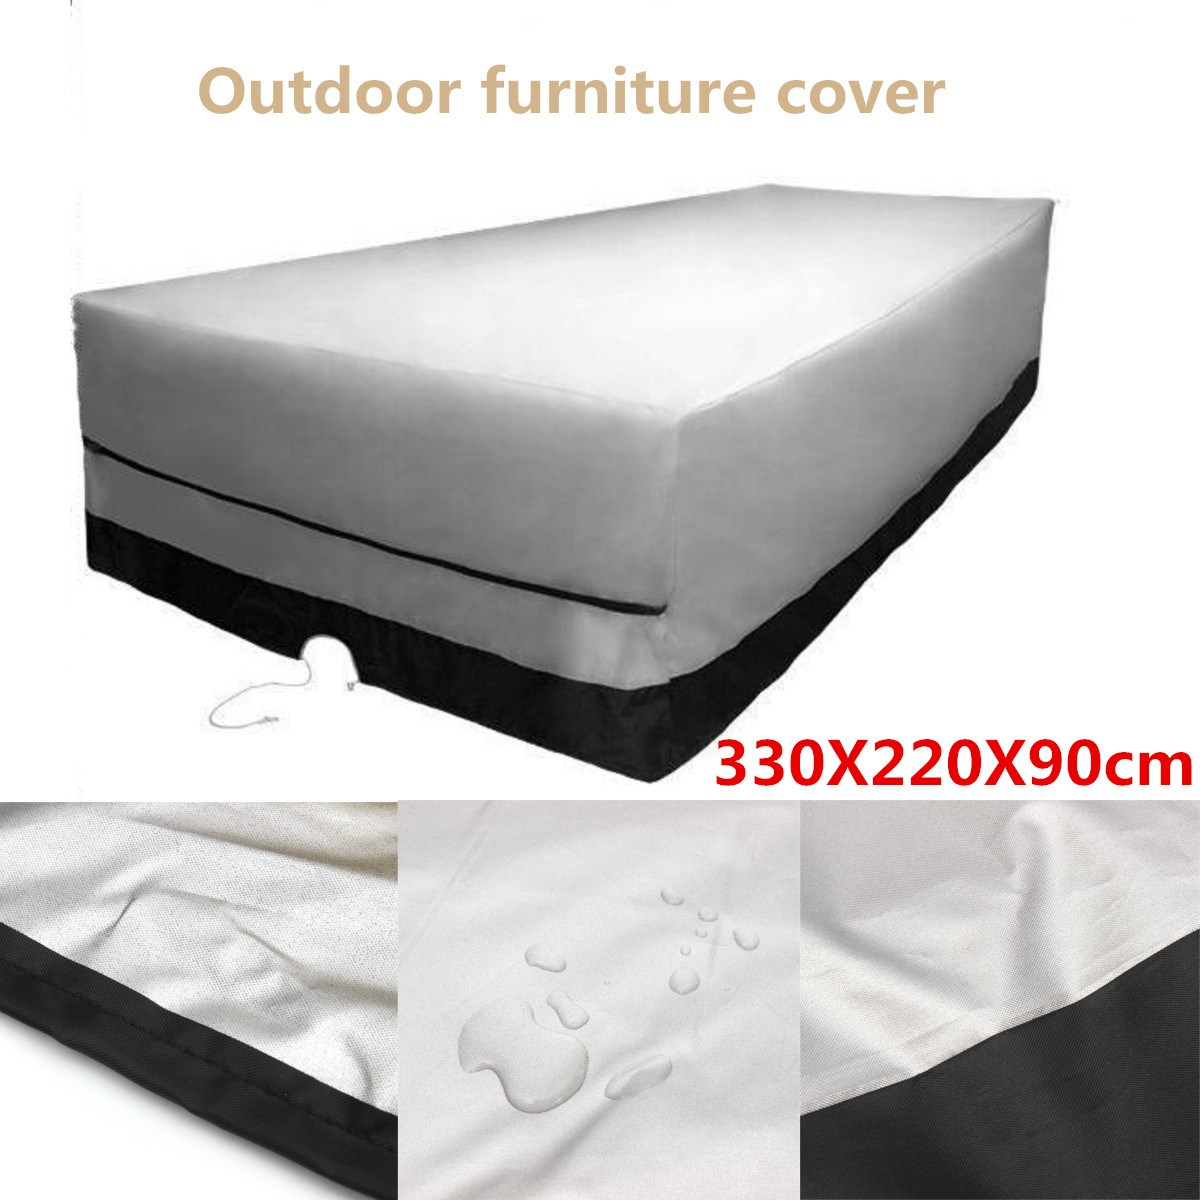 outdoor garden furniture cover rect patio table desk chair waterproof black color 600d dust rain - Patio Chair Covers